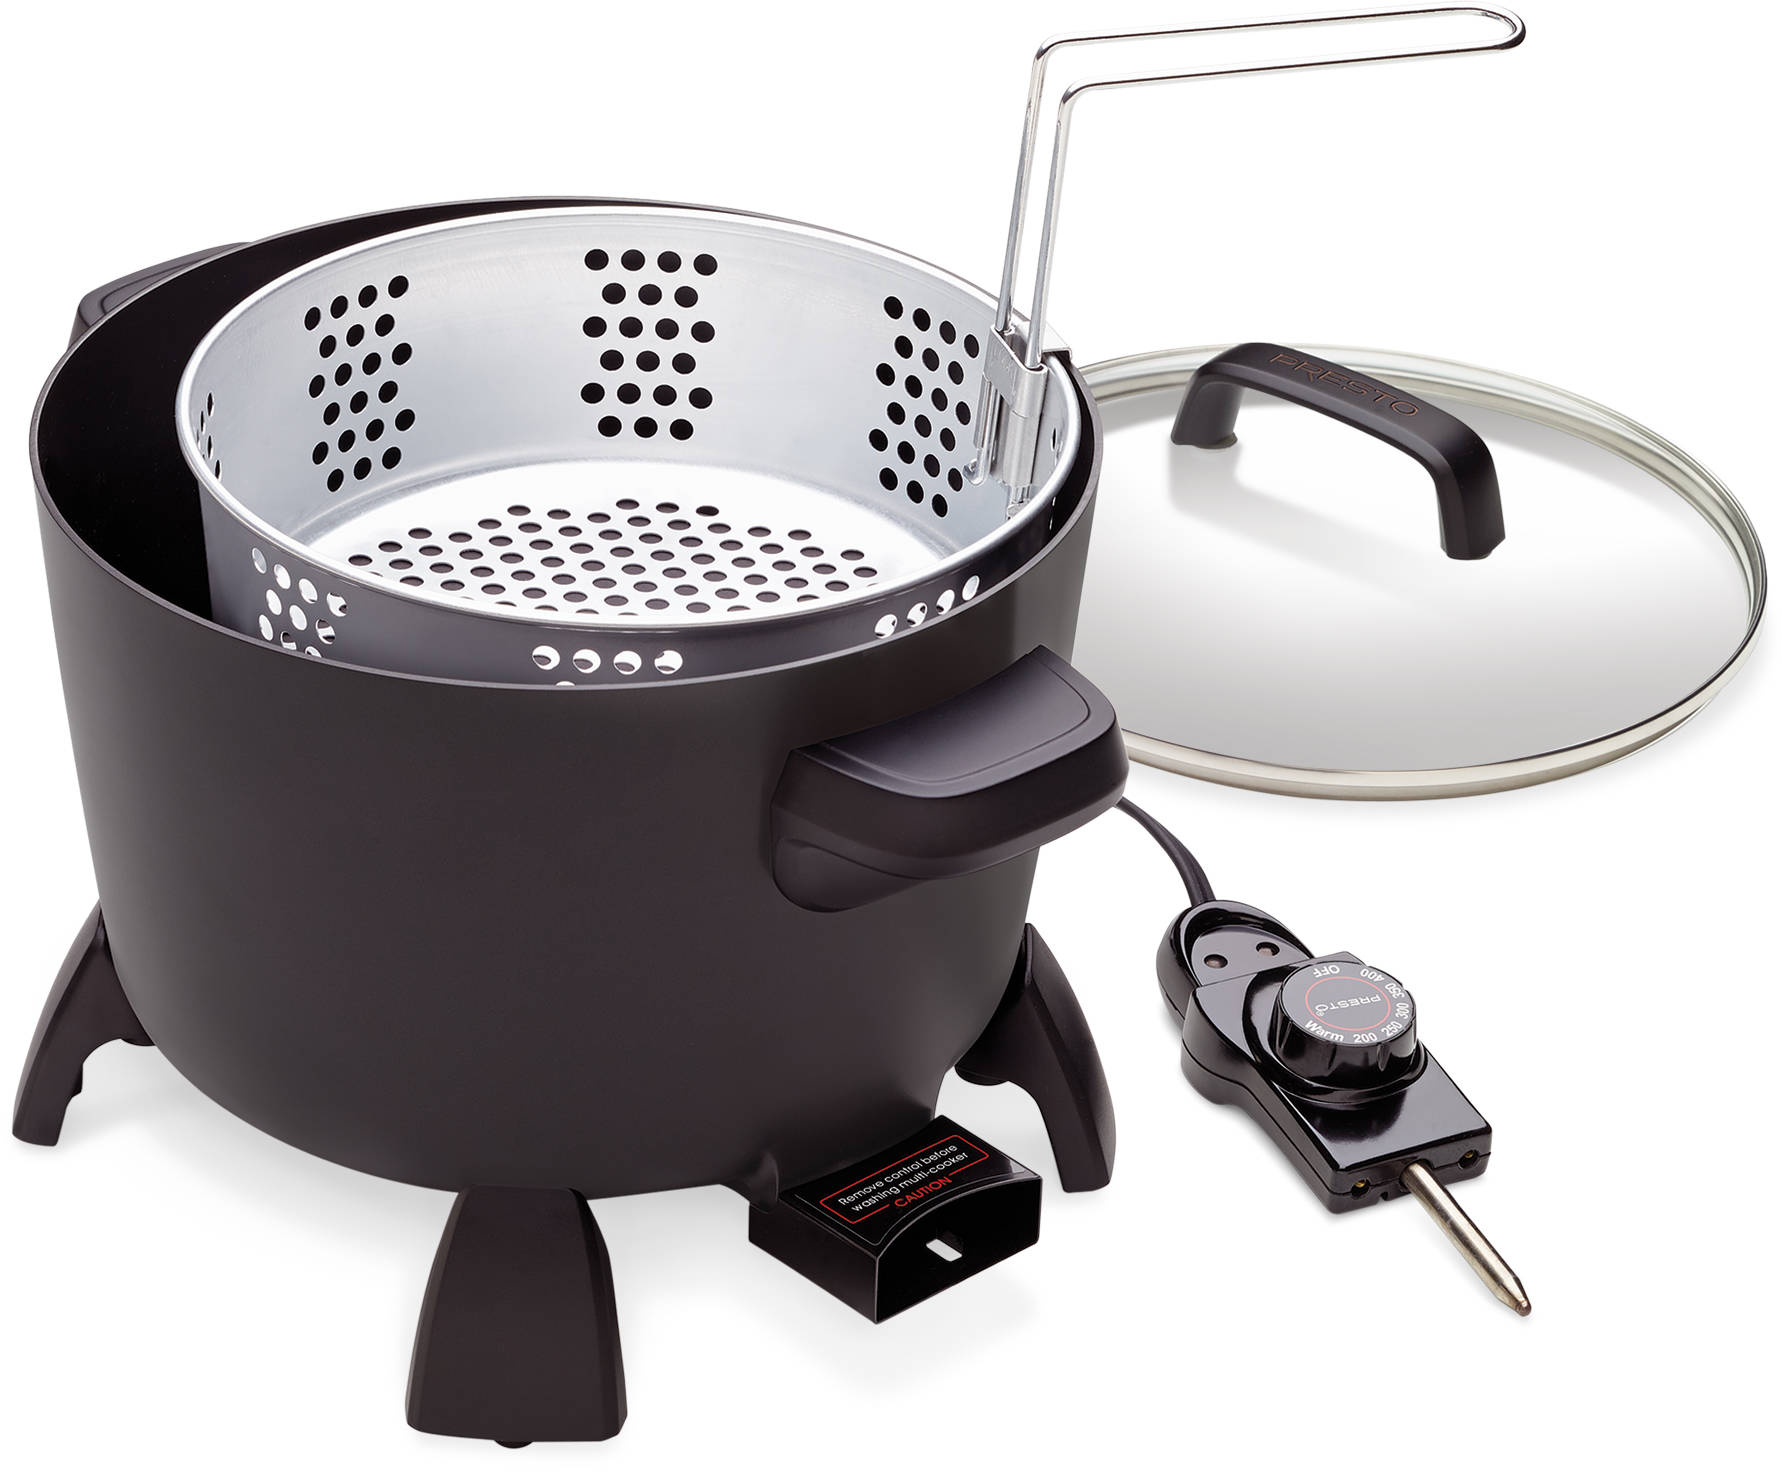 Presto Kitchen Kettle Multi Cooker Reviews Presto Kitchen Kettle Multi  Cooker Steamer Walmart